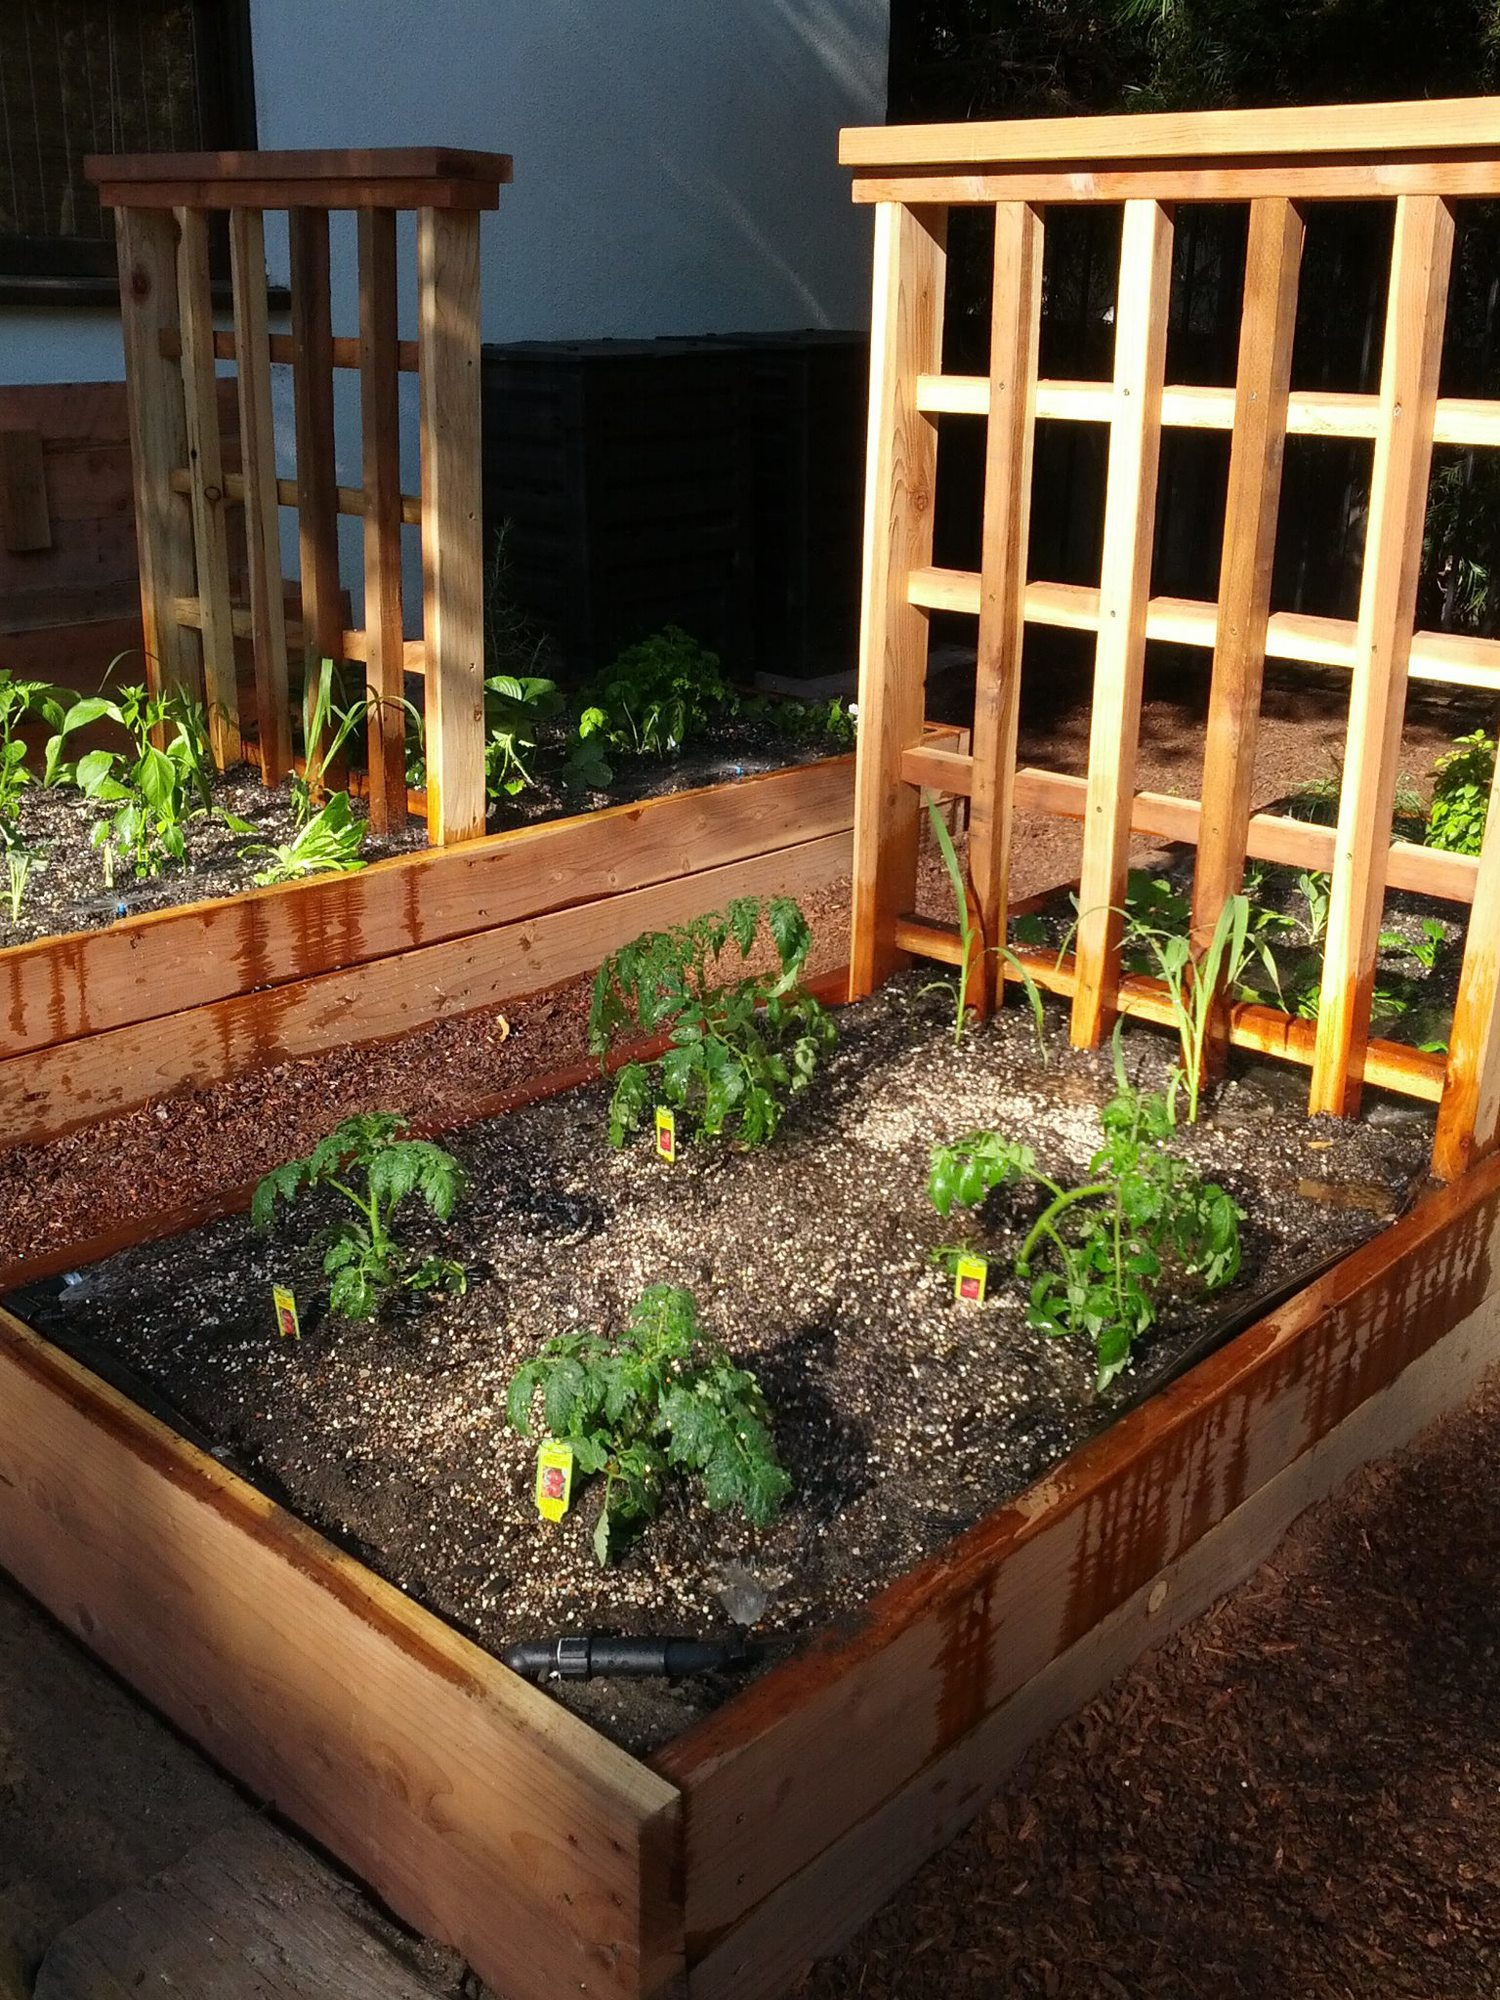 Garden Beds and Planter Boxes — The Urban Farmer